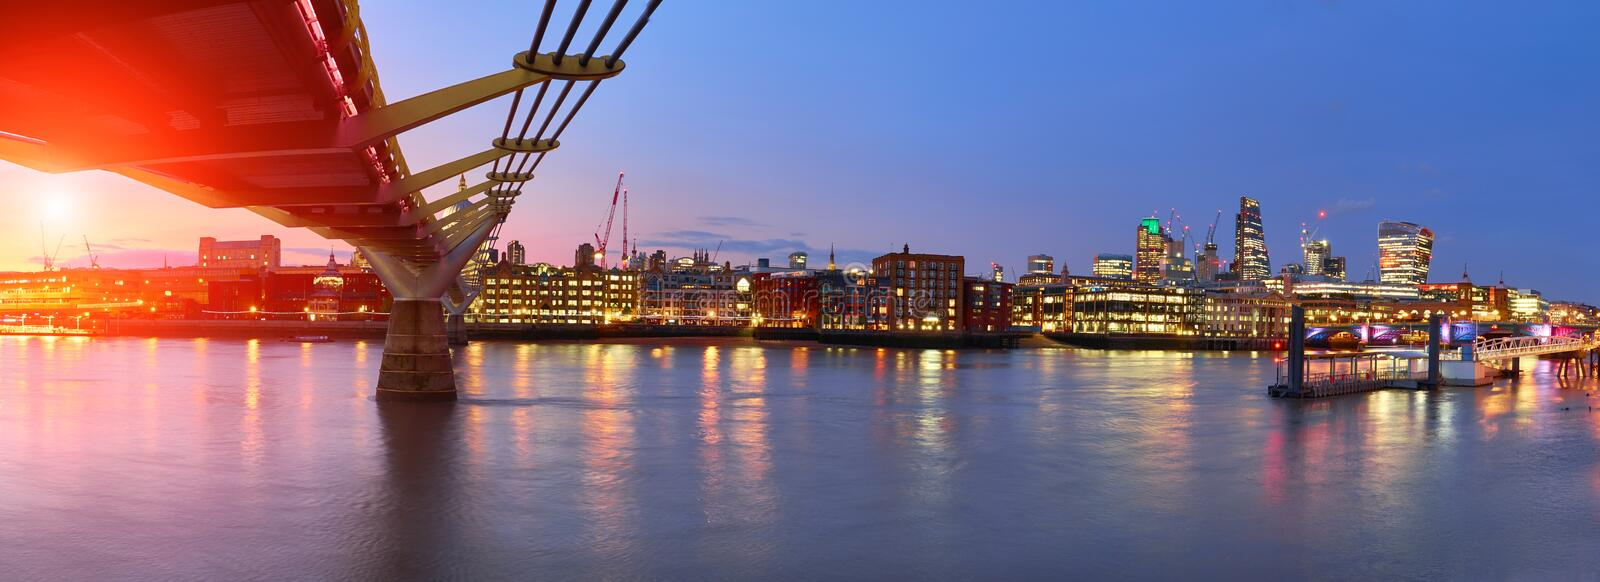 London at sunset, Millennium bridge leading towards illuminated St. Paul cathedral over Thames river. With city bathing in electric light. Panoramic toned image stock photography